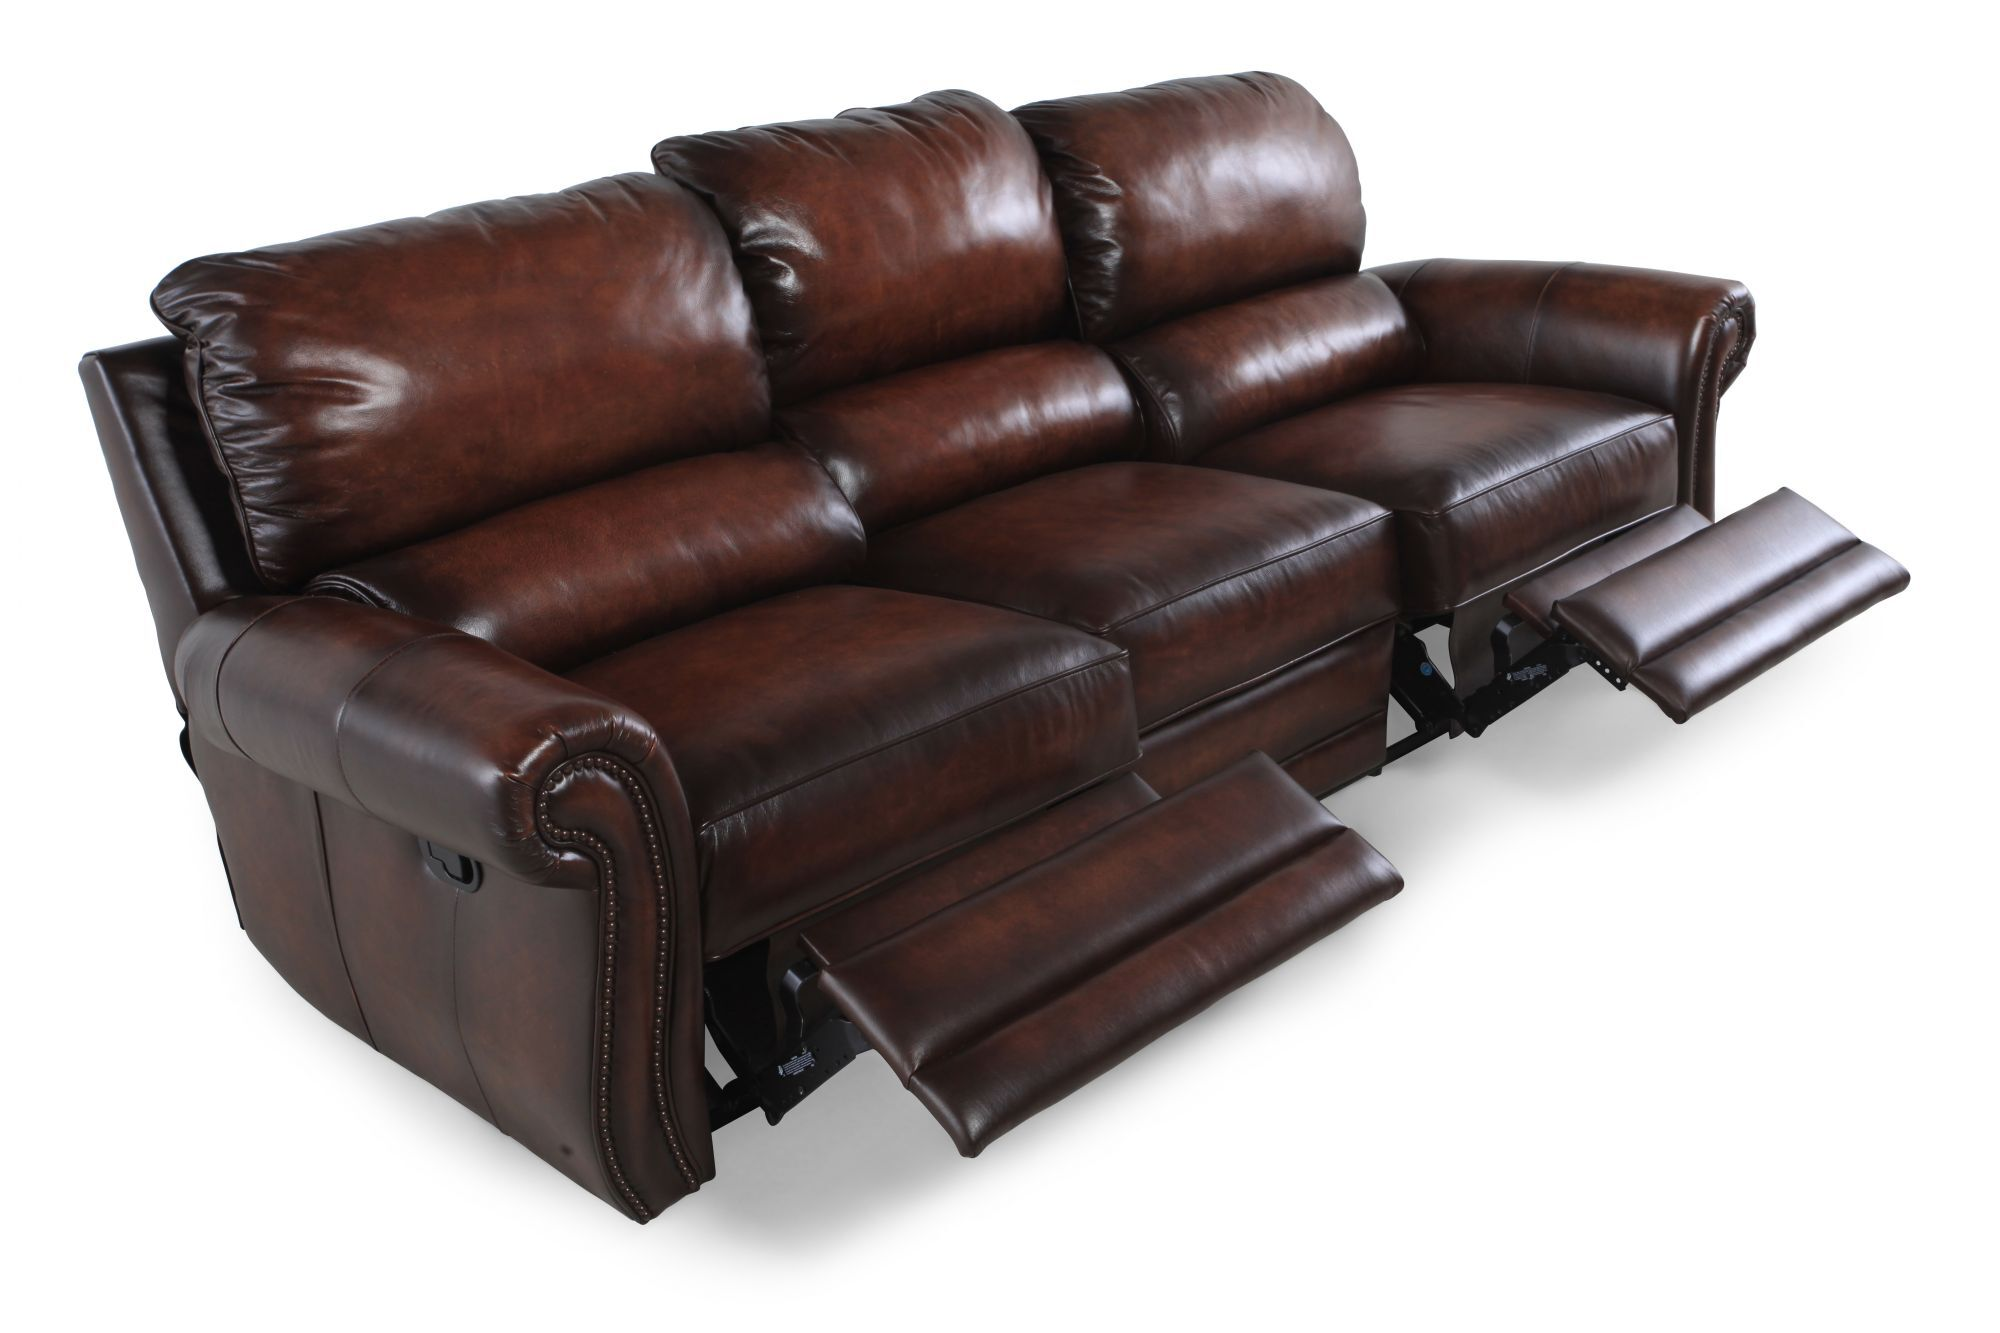 Awe Inspiring Leather Wall Saver Reclining Sofa In Brown Mathis Brothers Andrewgaddart Wooden Chair Designs For Living Room Andrewgaddartcom